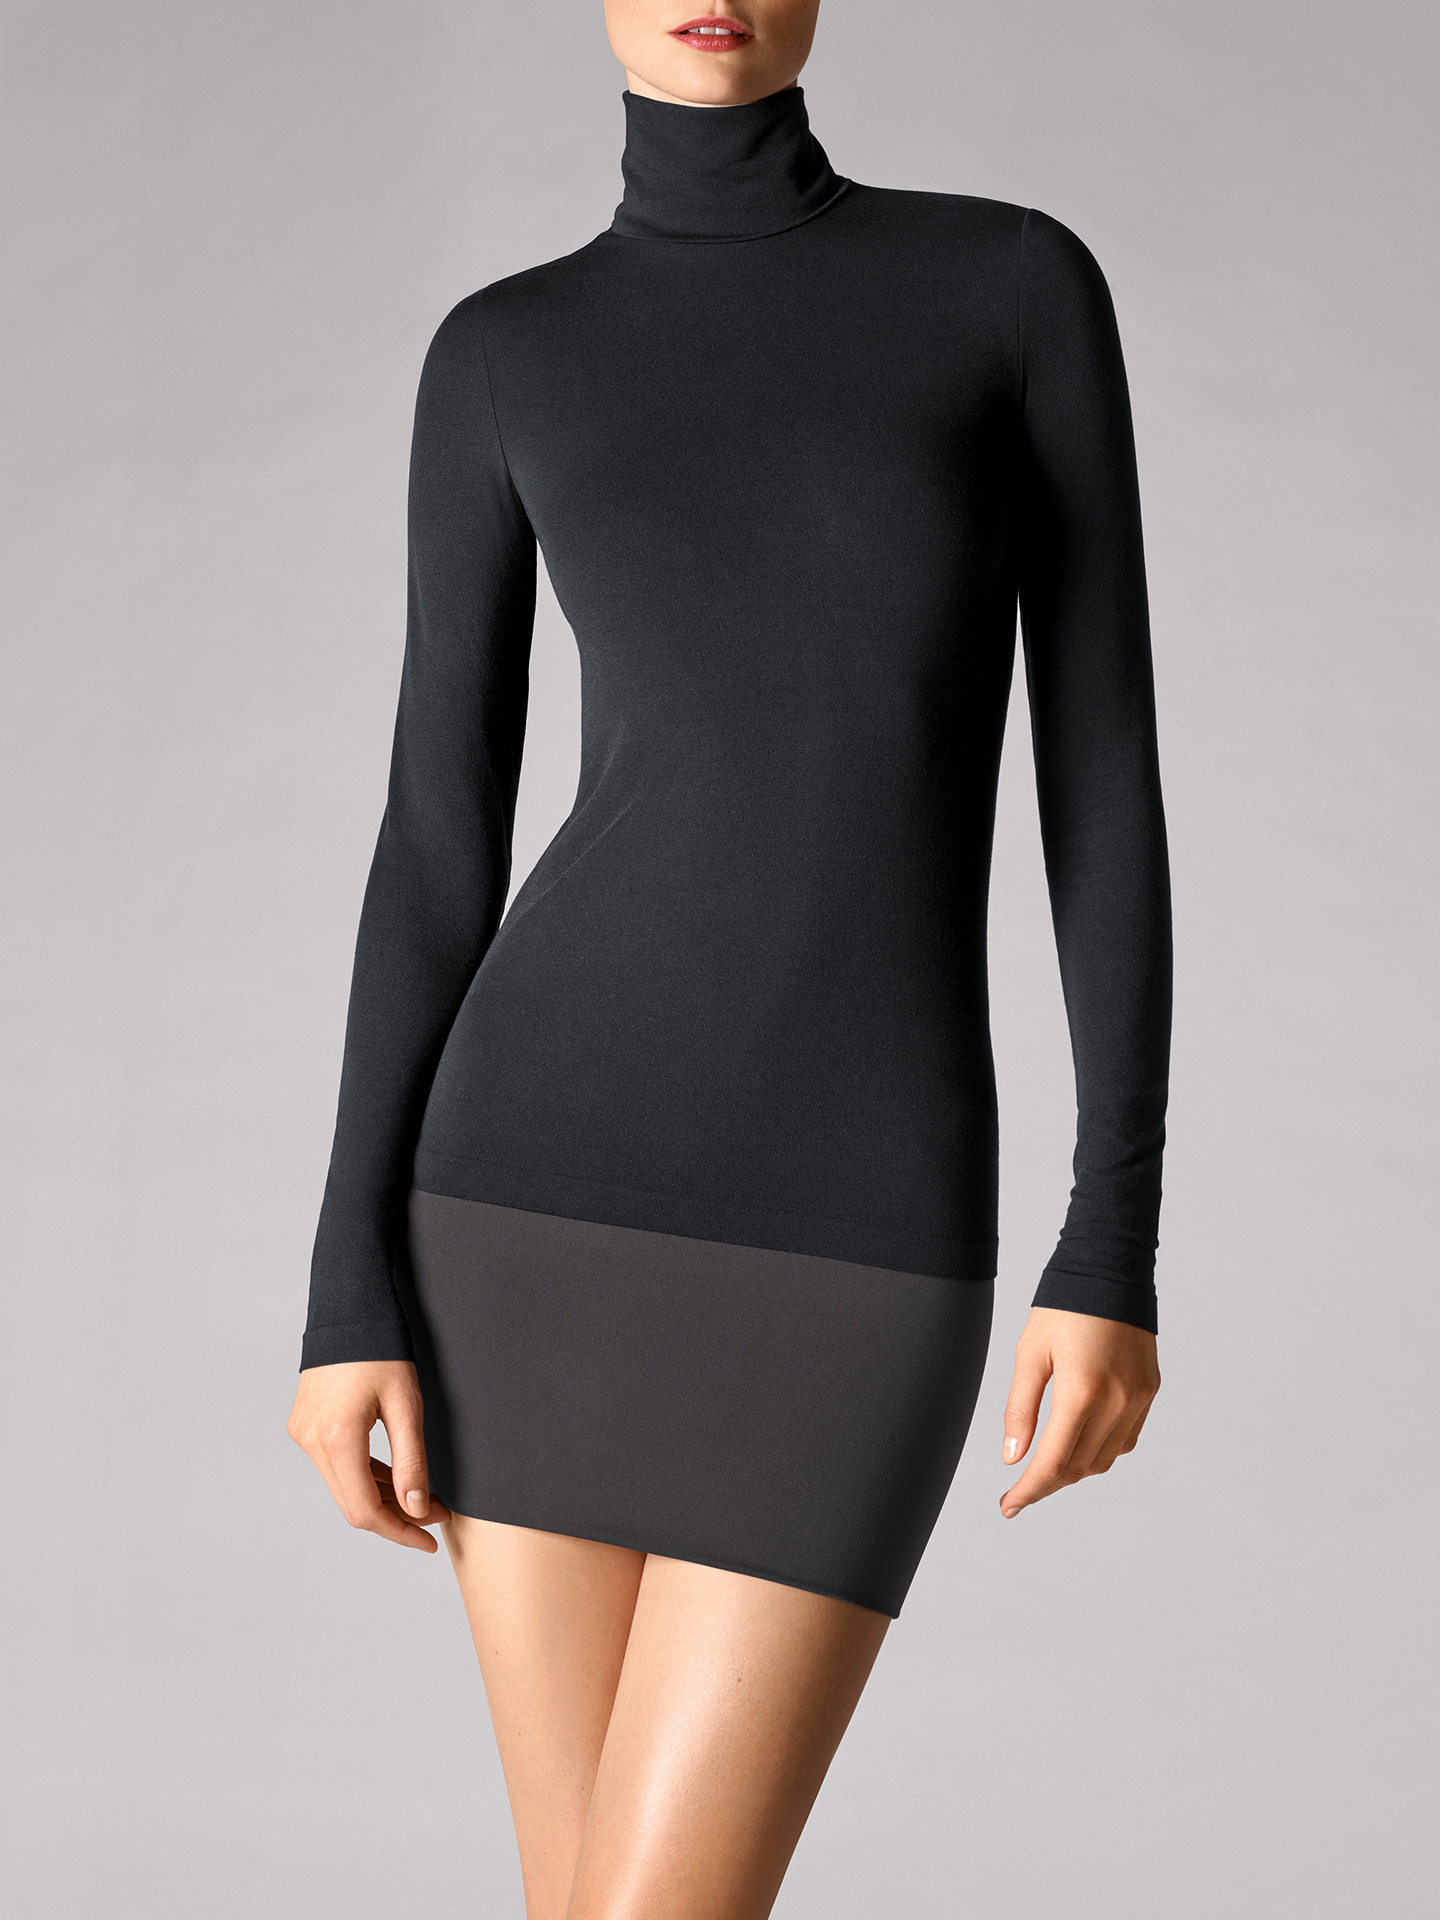 Wolford Apparel & Accessories > Clothing > Pullovers Viscose Pullover - 7005 - M